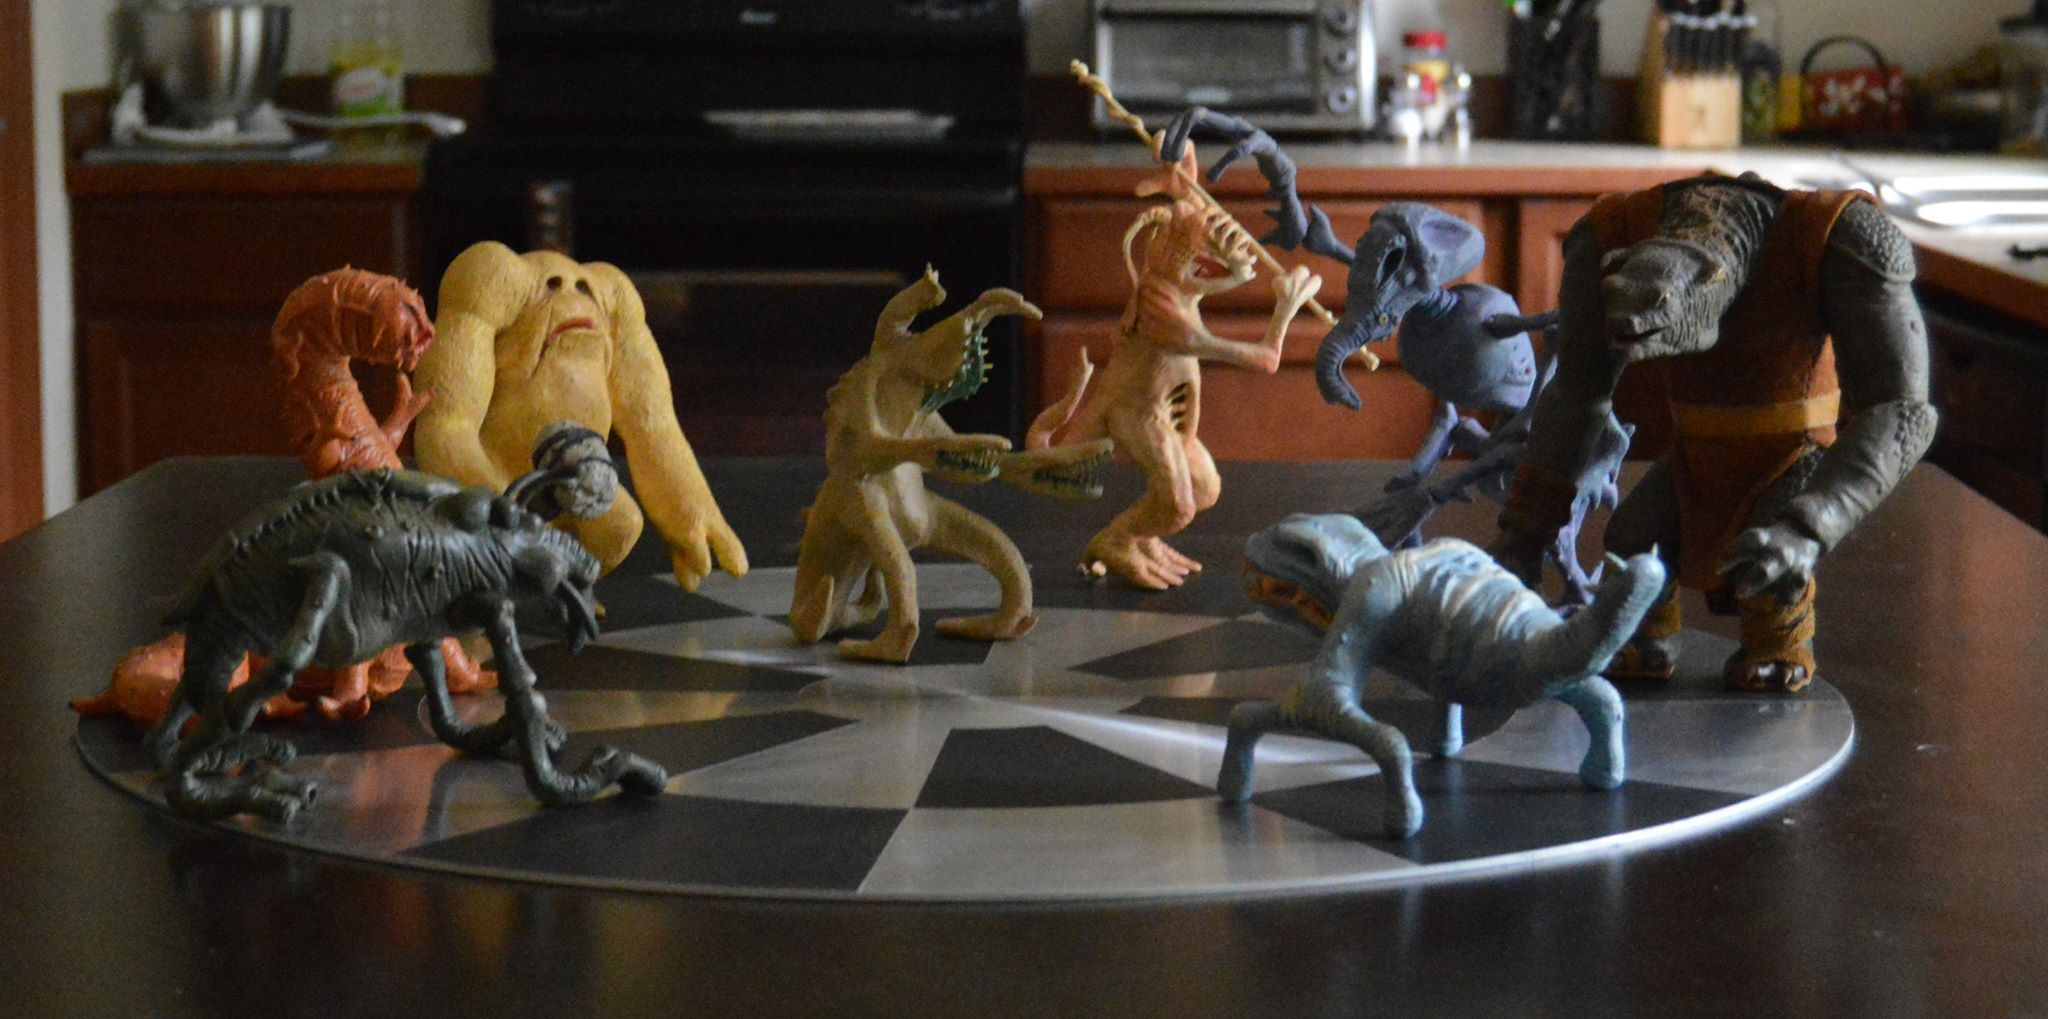 Building a Playable Star Wars Holochess Set